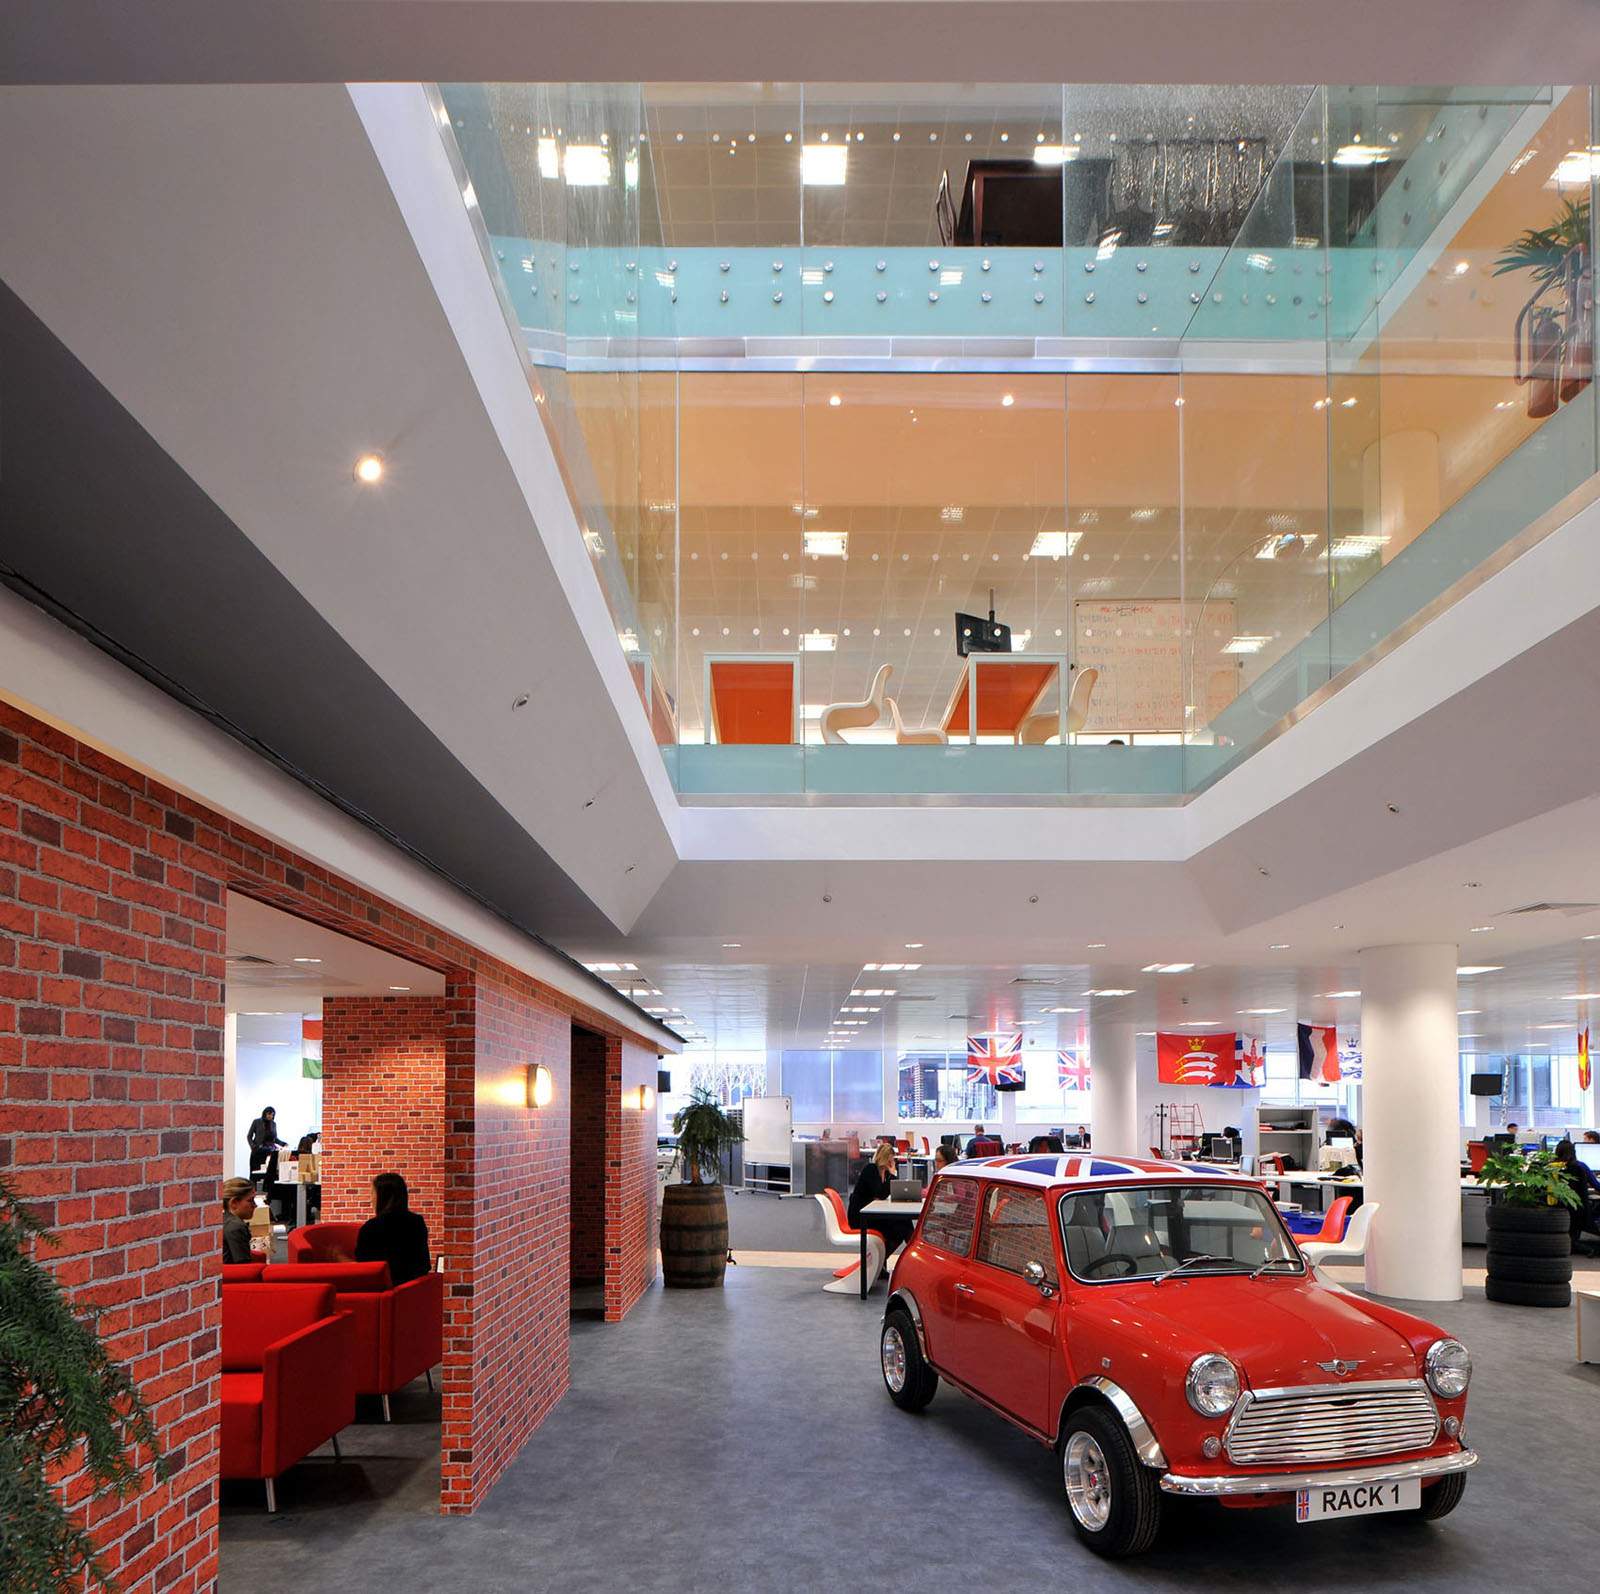 Inspiring British Office Interior Design At Rackspace ...